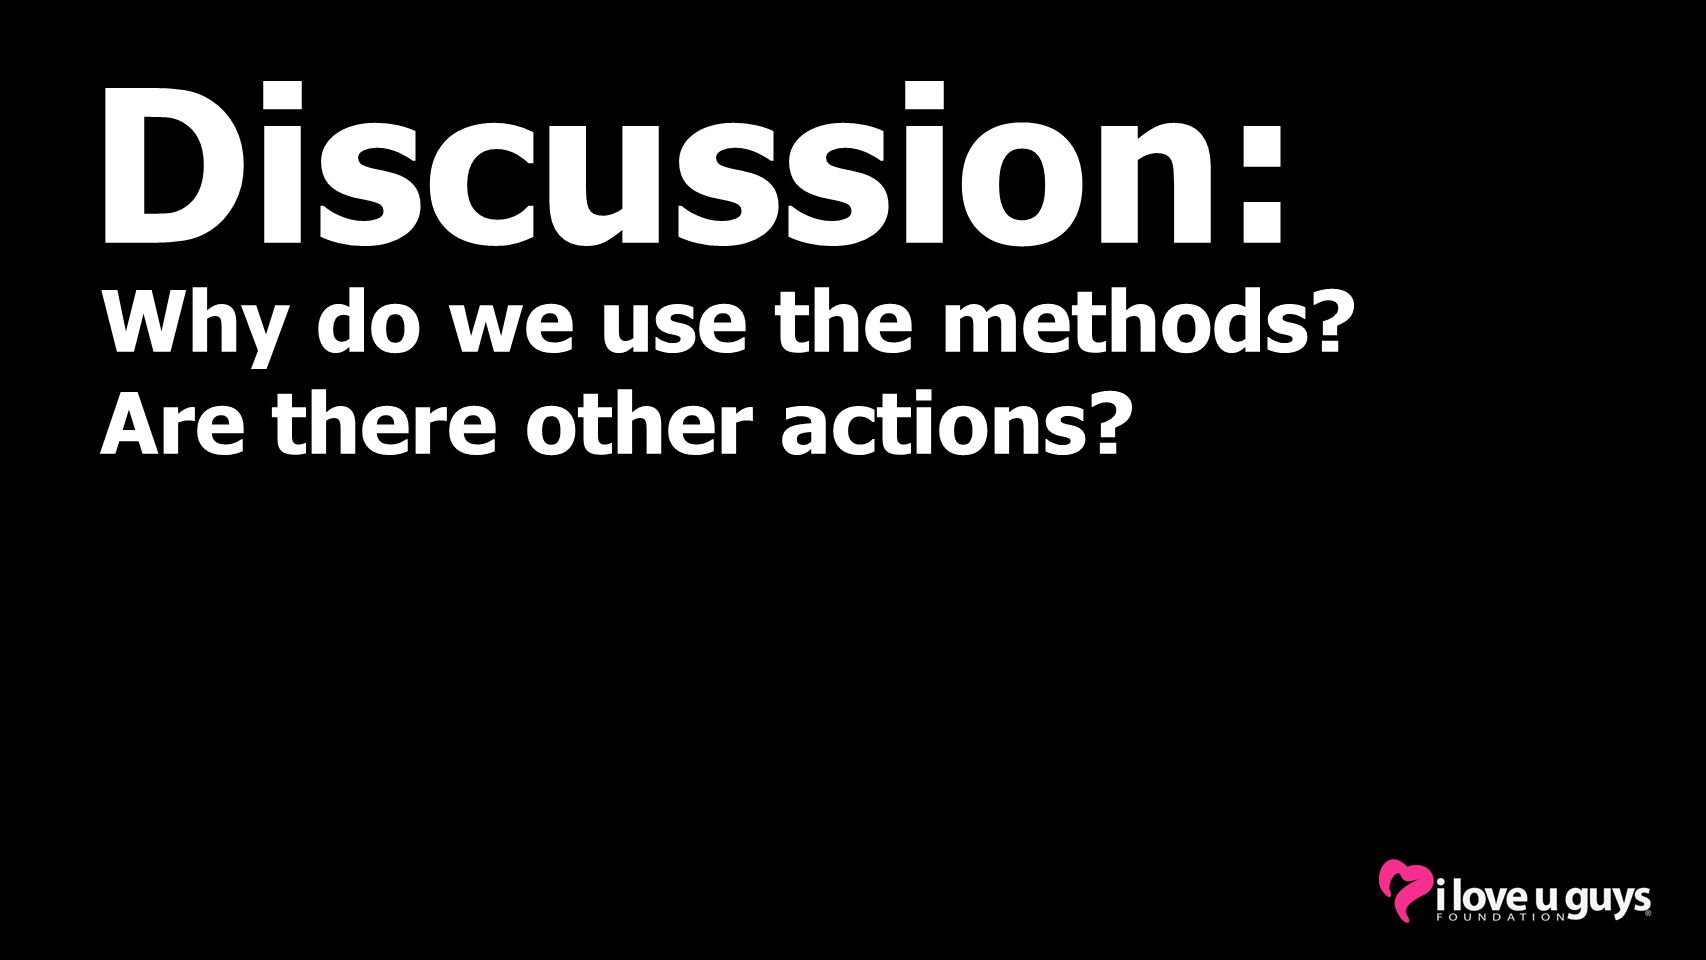 Discussion: Why do we use the methods? Are there other actions?